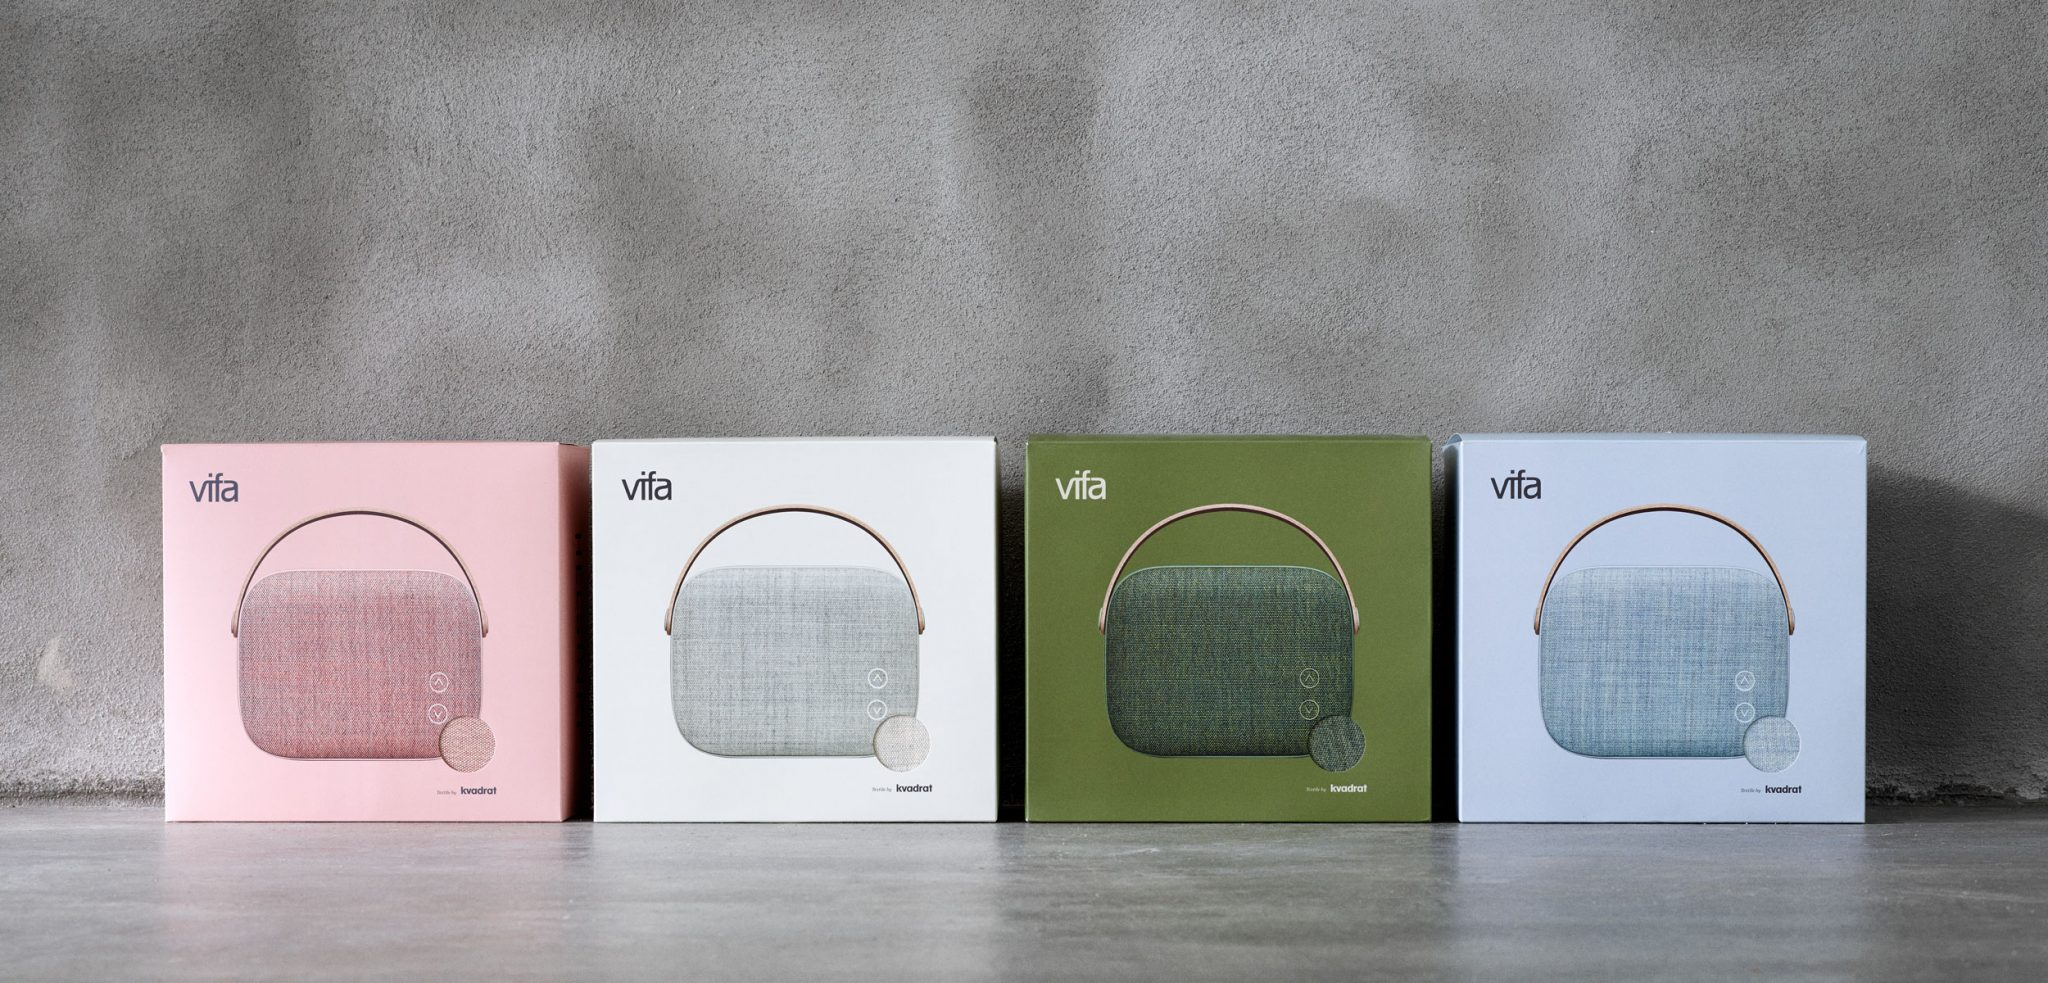 Vifa Helsinki speakers' packaging